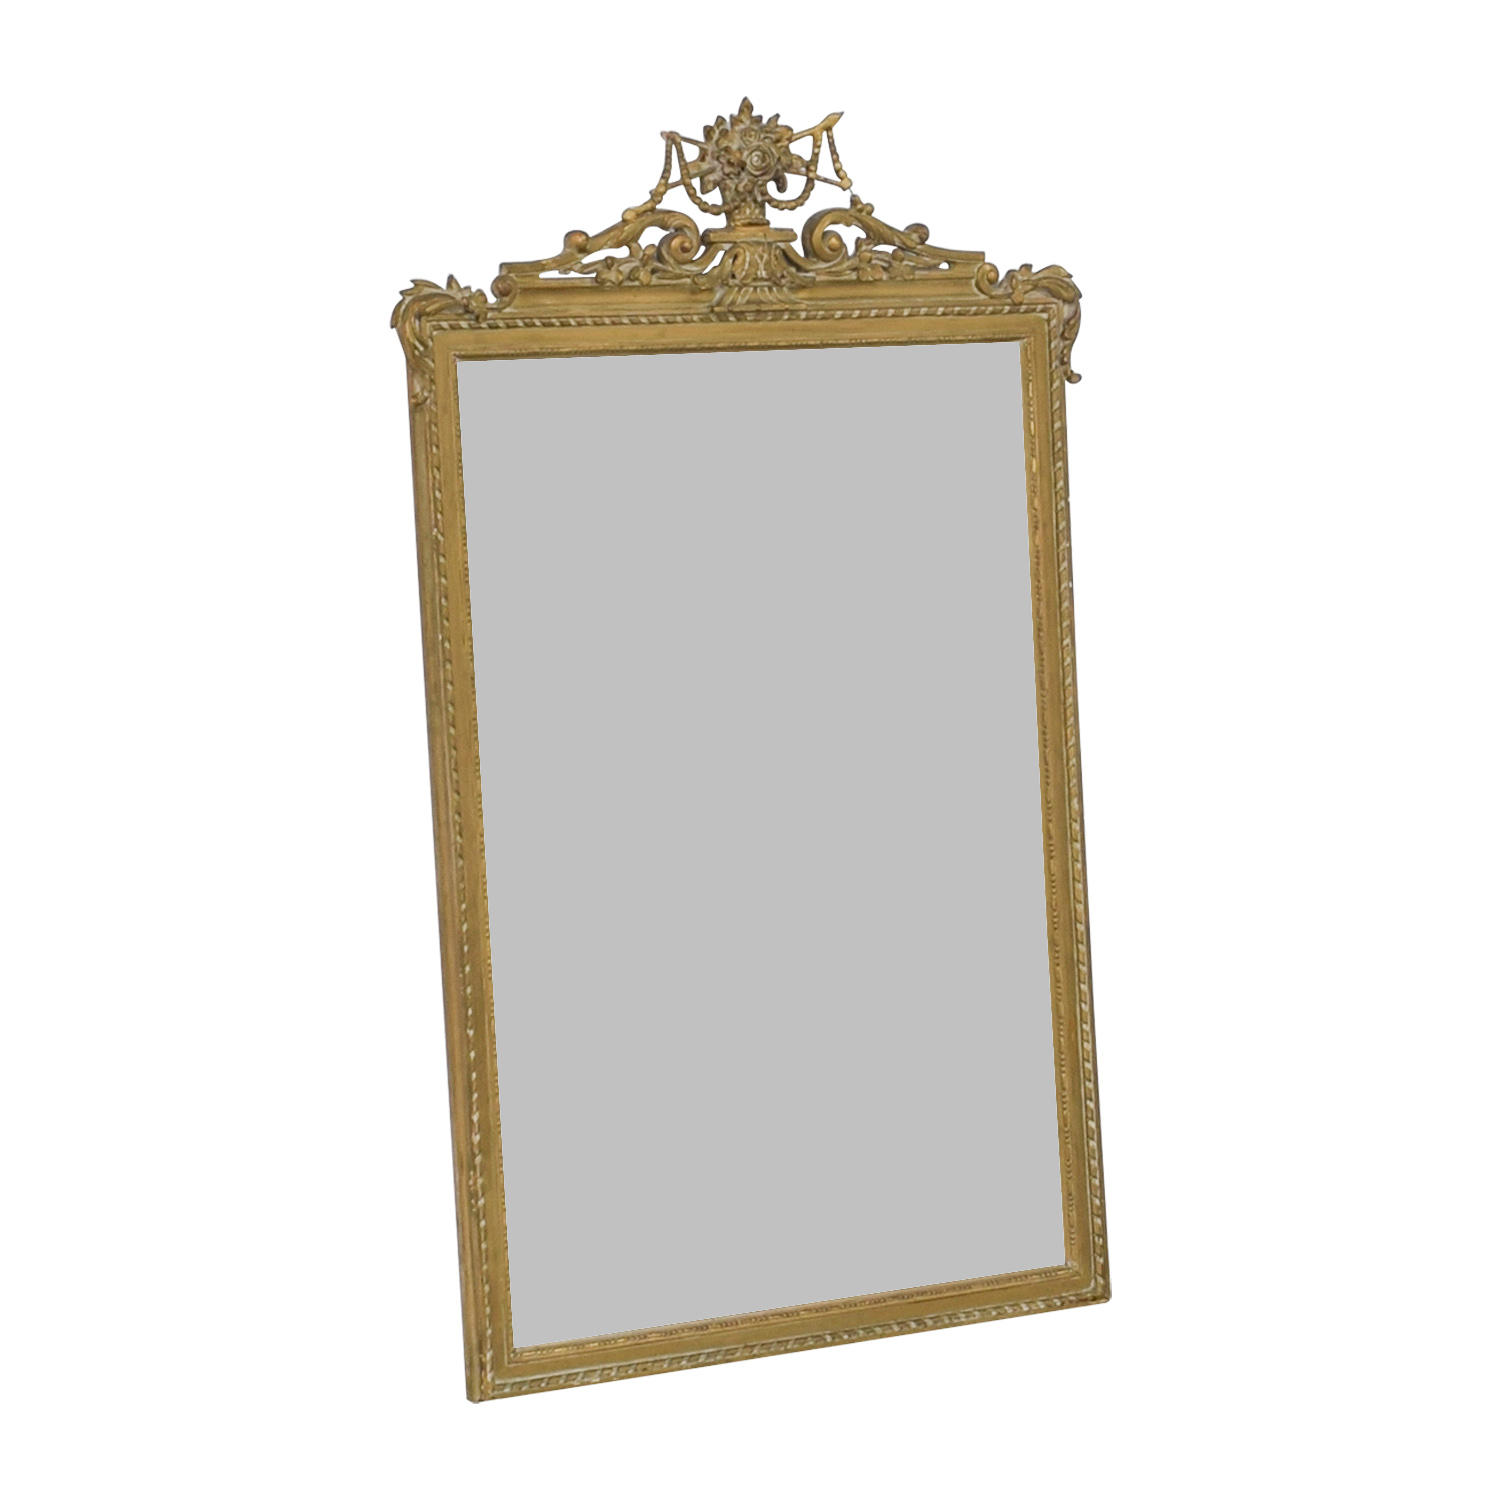 shop Antique Gold Framed Mirror  Decor